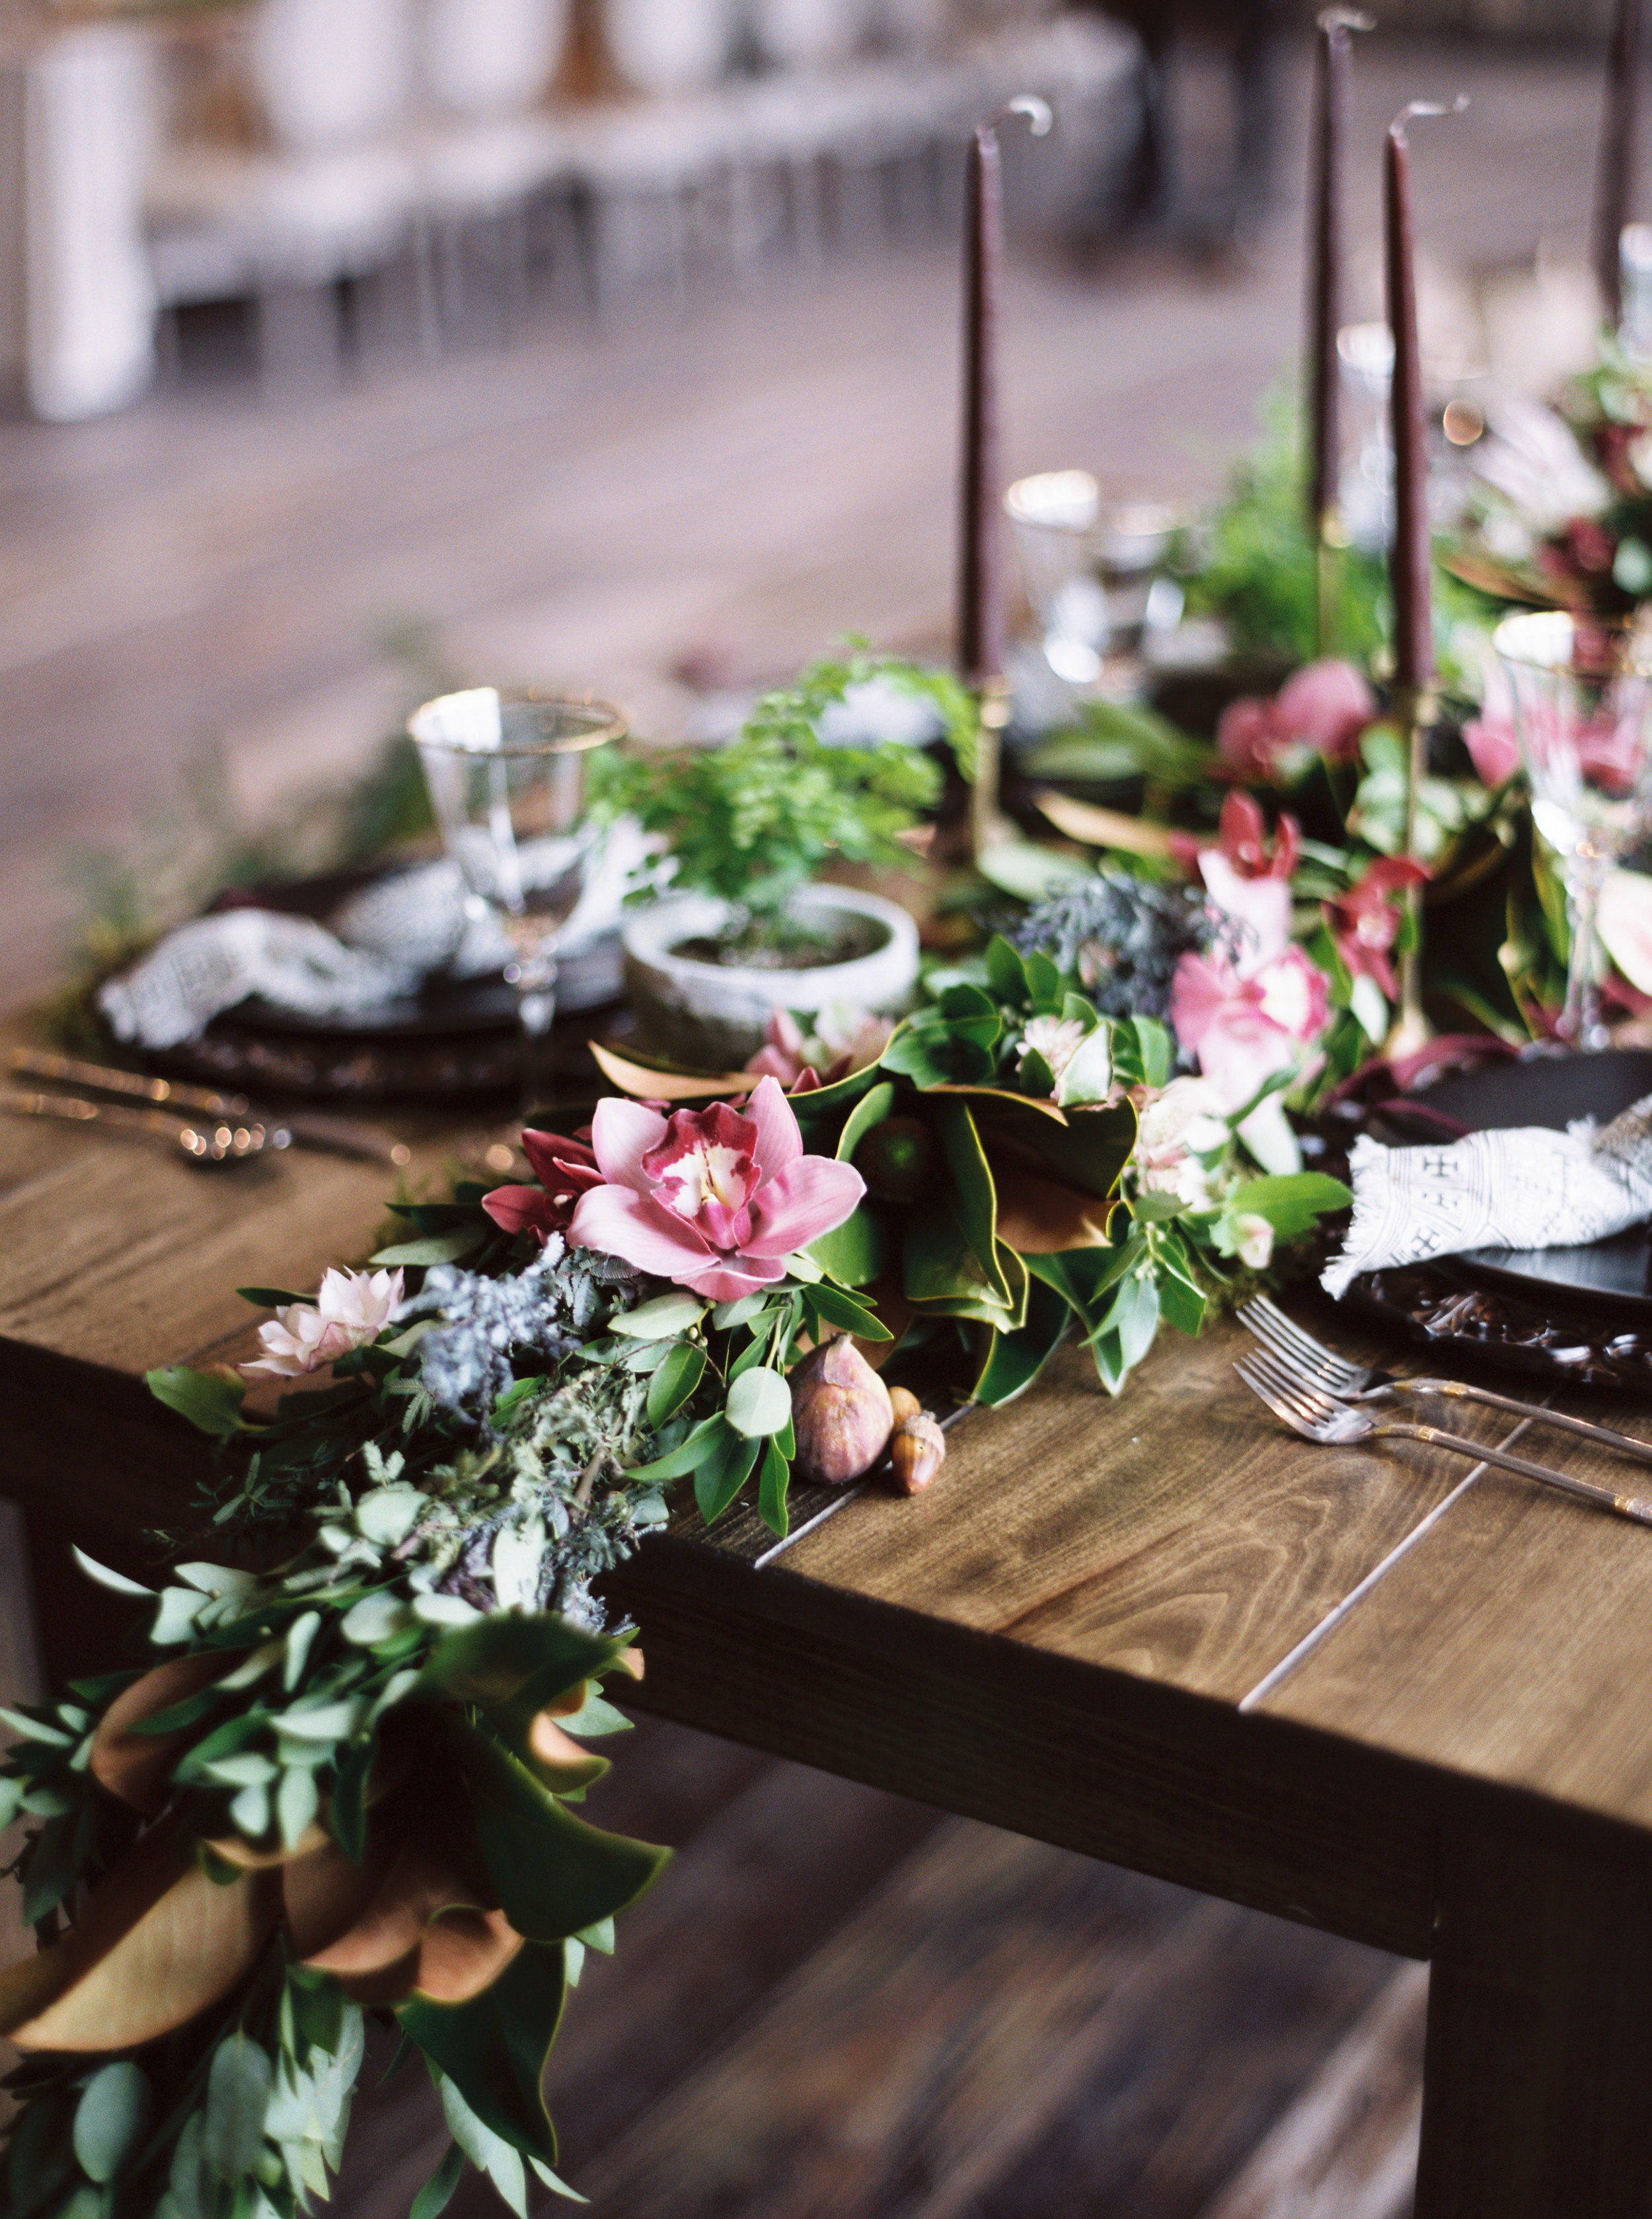 boho-inspired-wedding-at-casa-bella-in-sunol-california-59.jpg